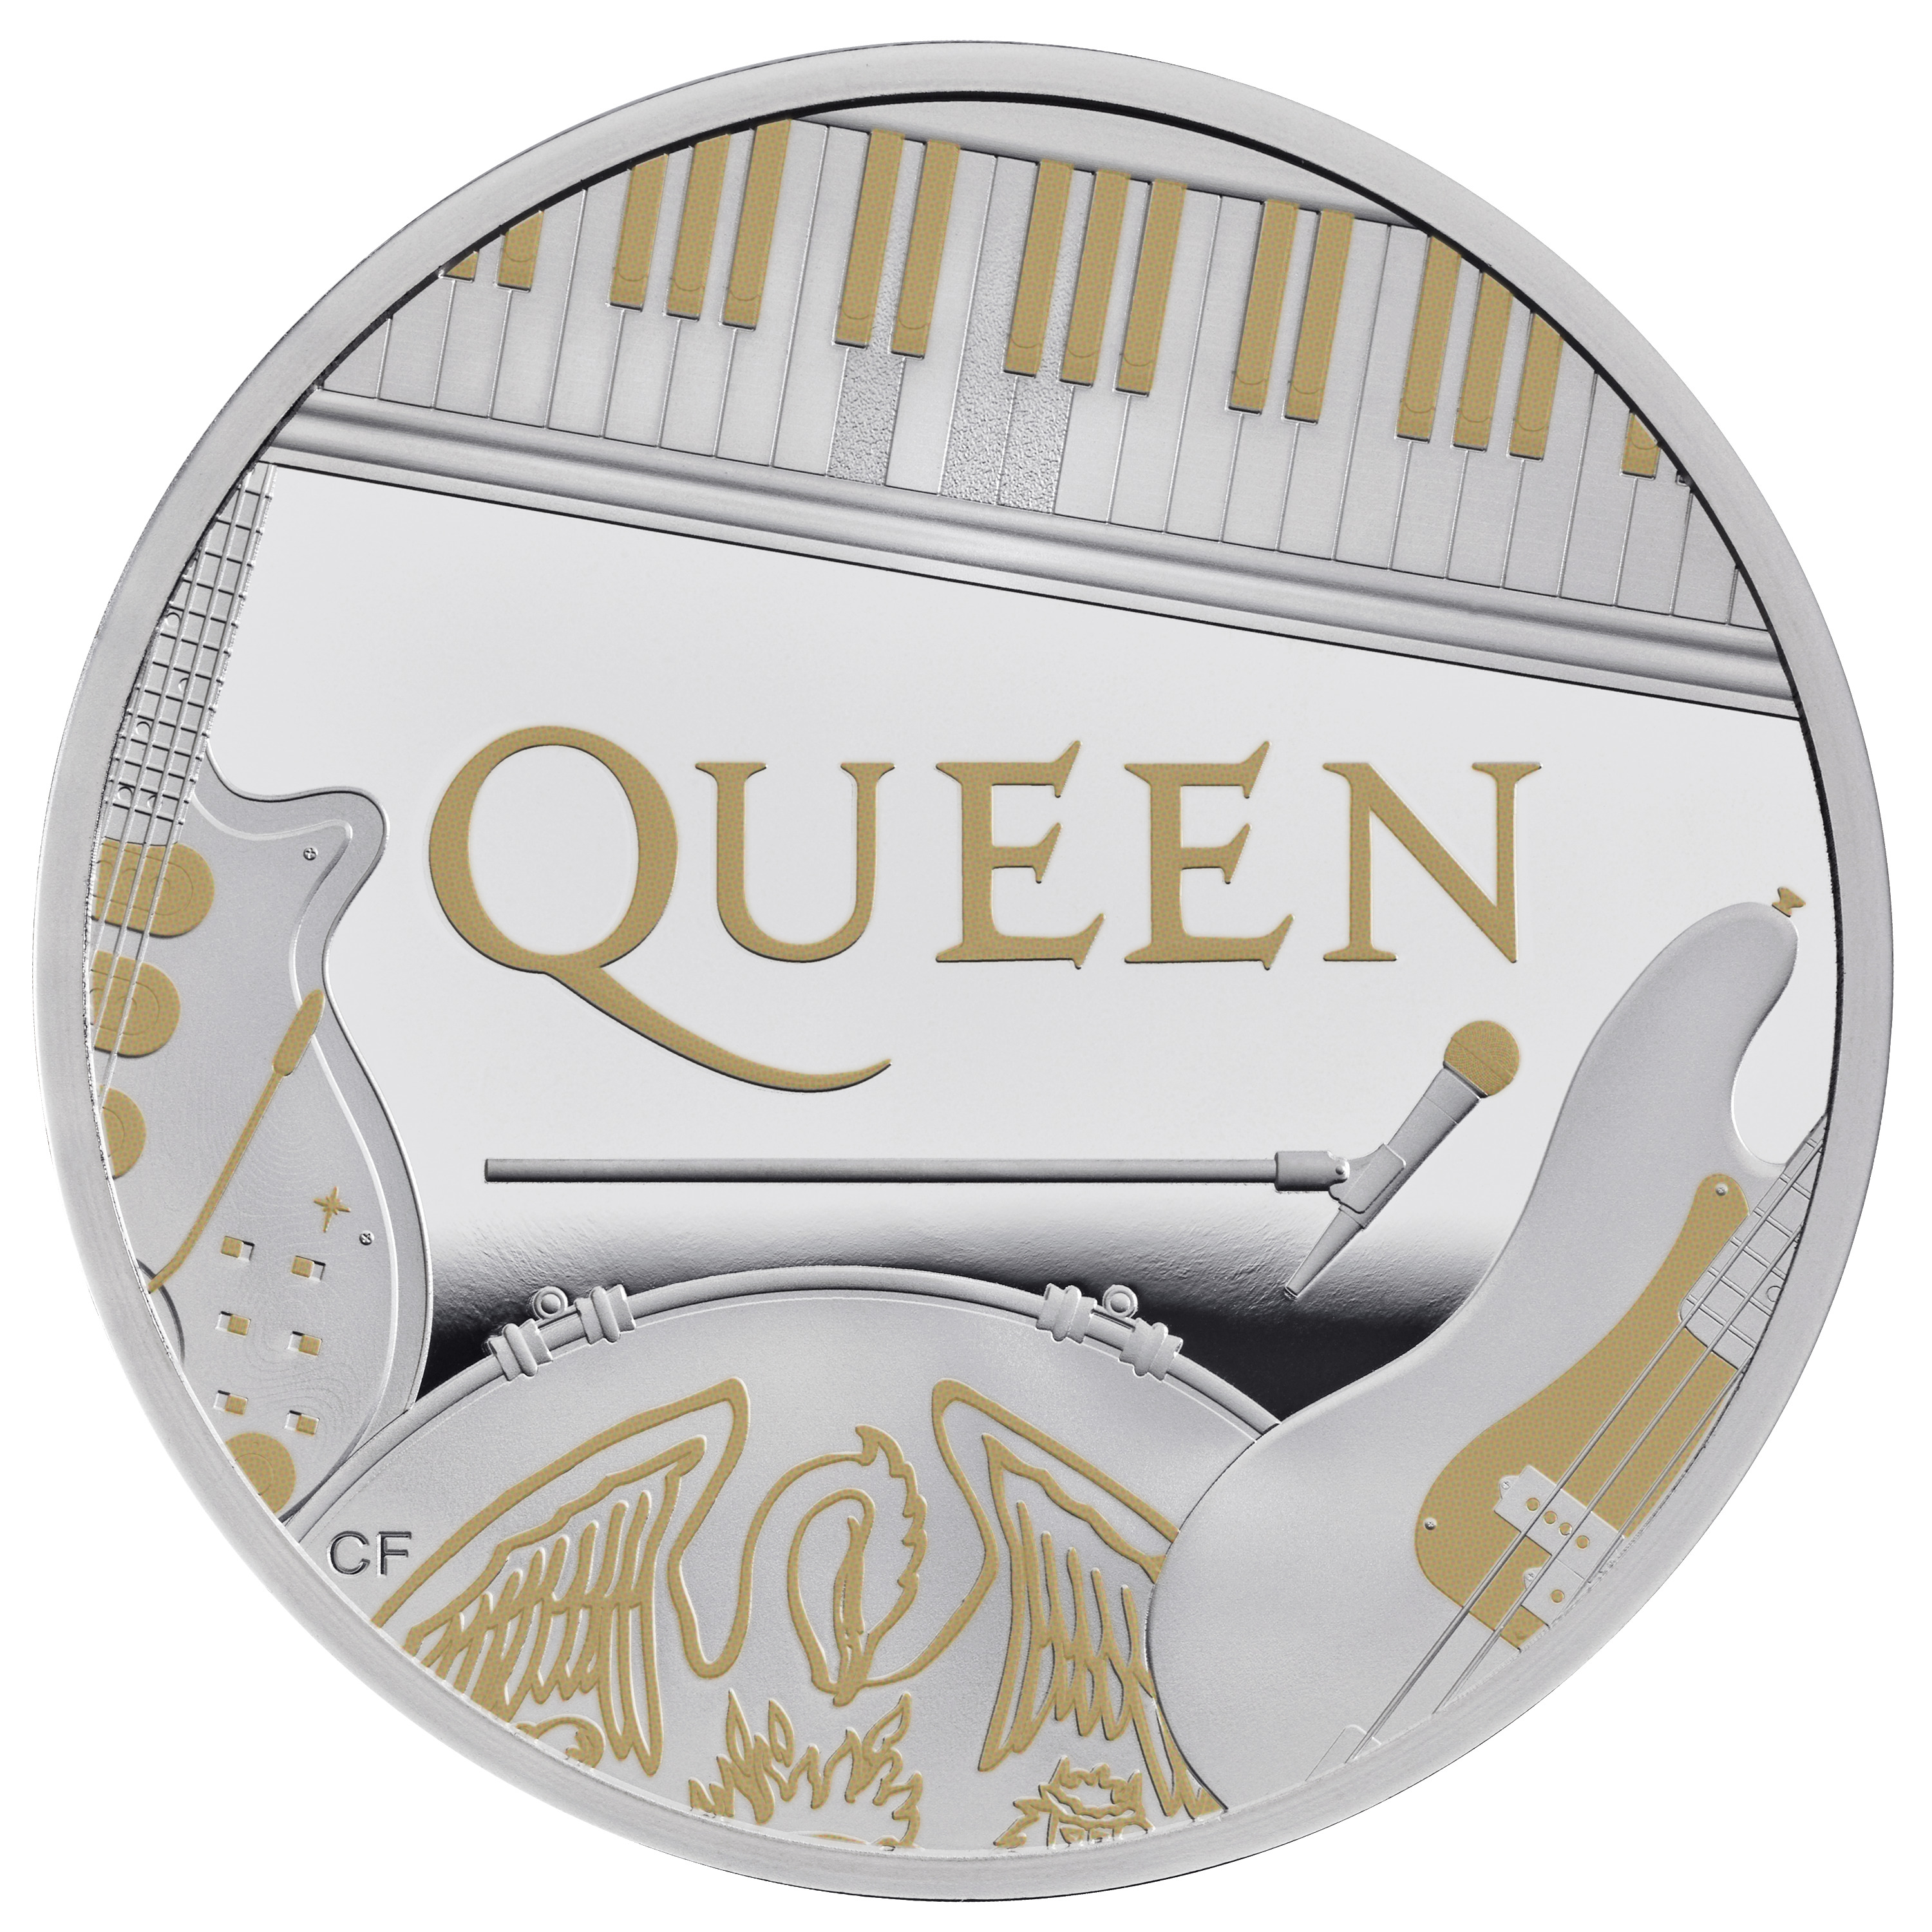 Queen rock music group celebrated with 2020 commemorative coins